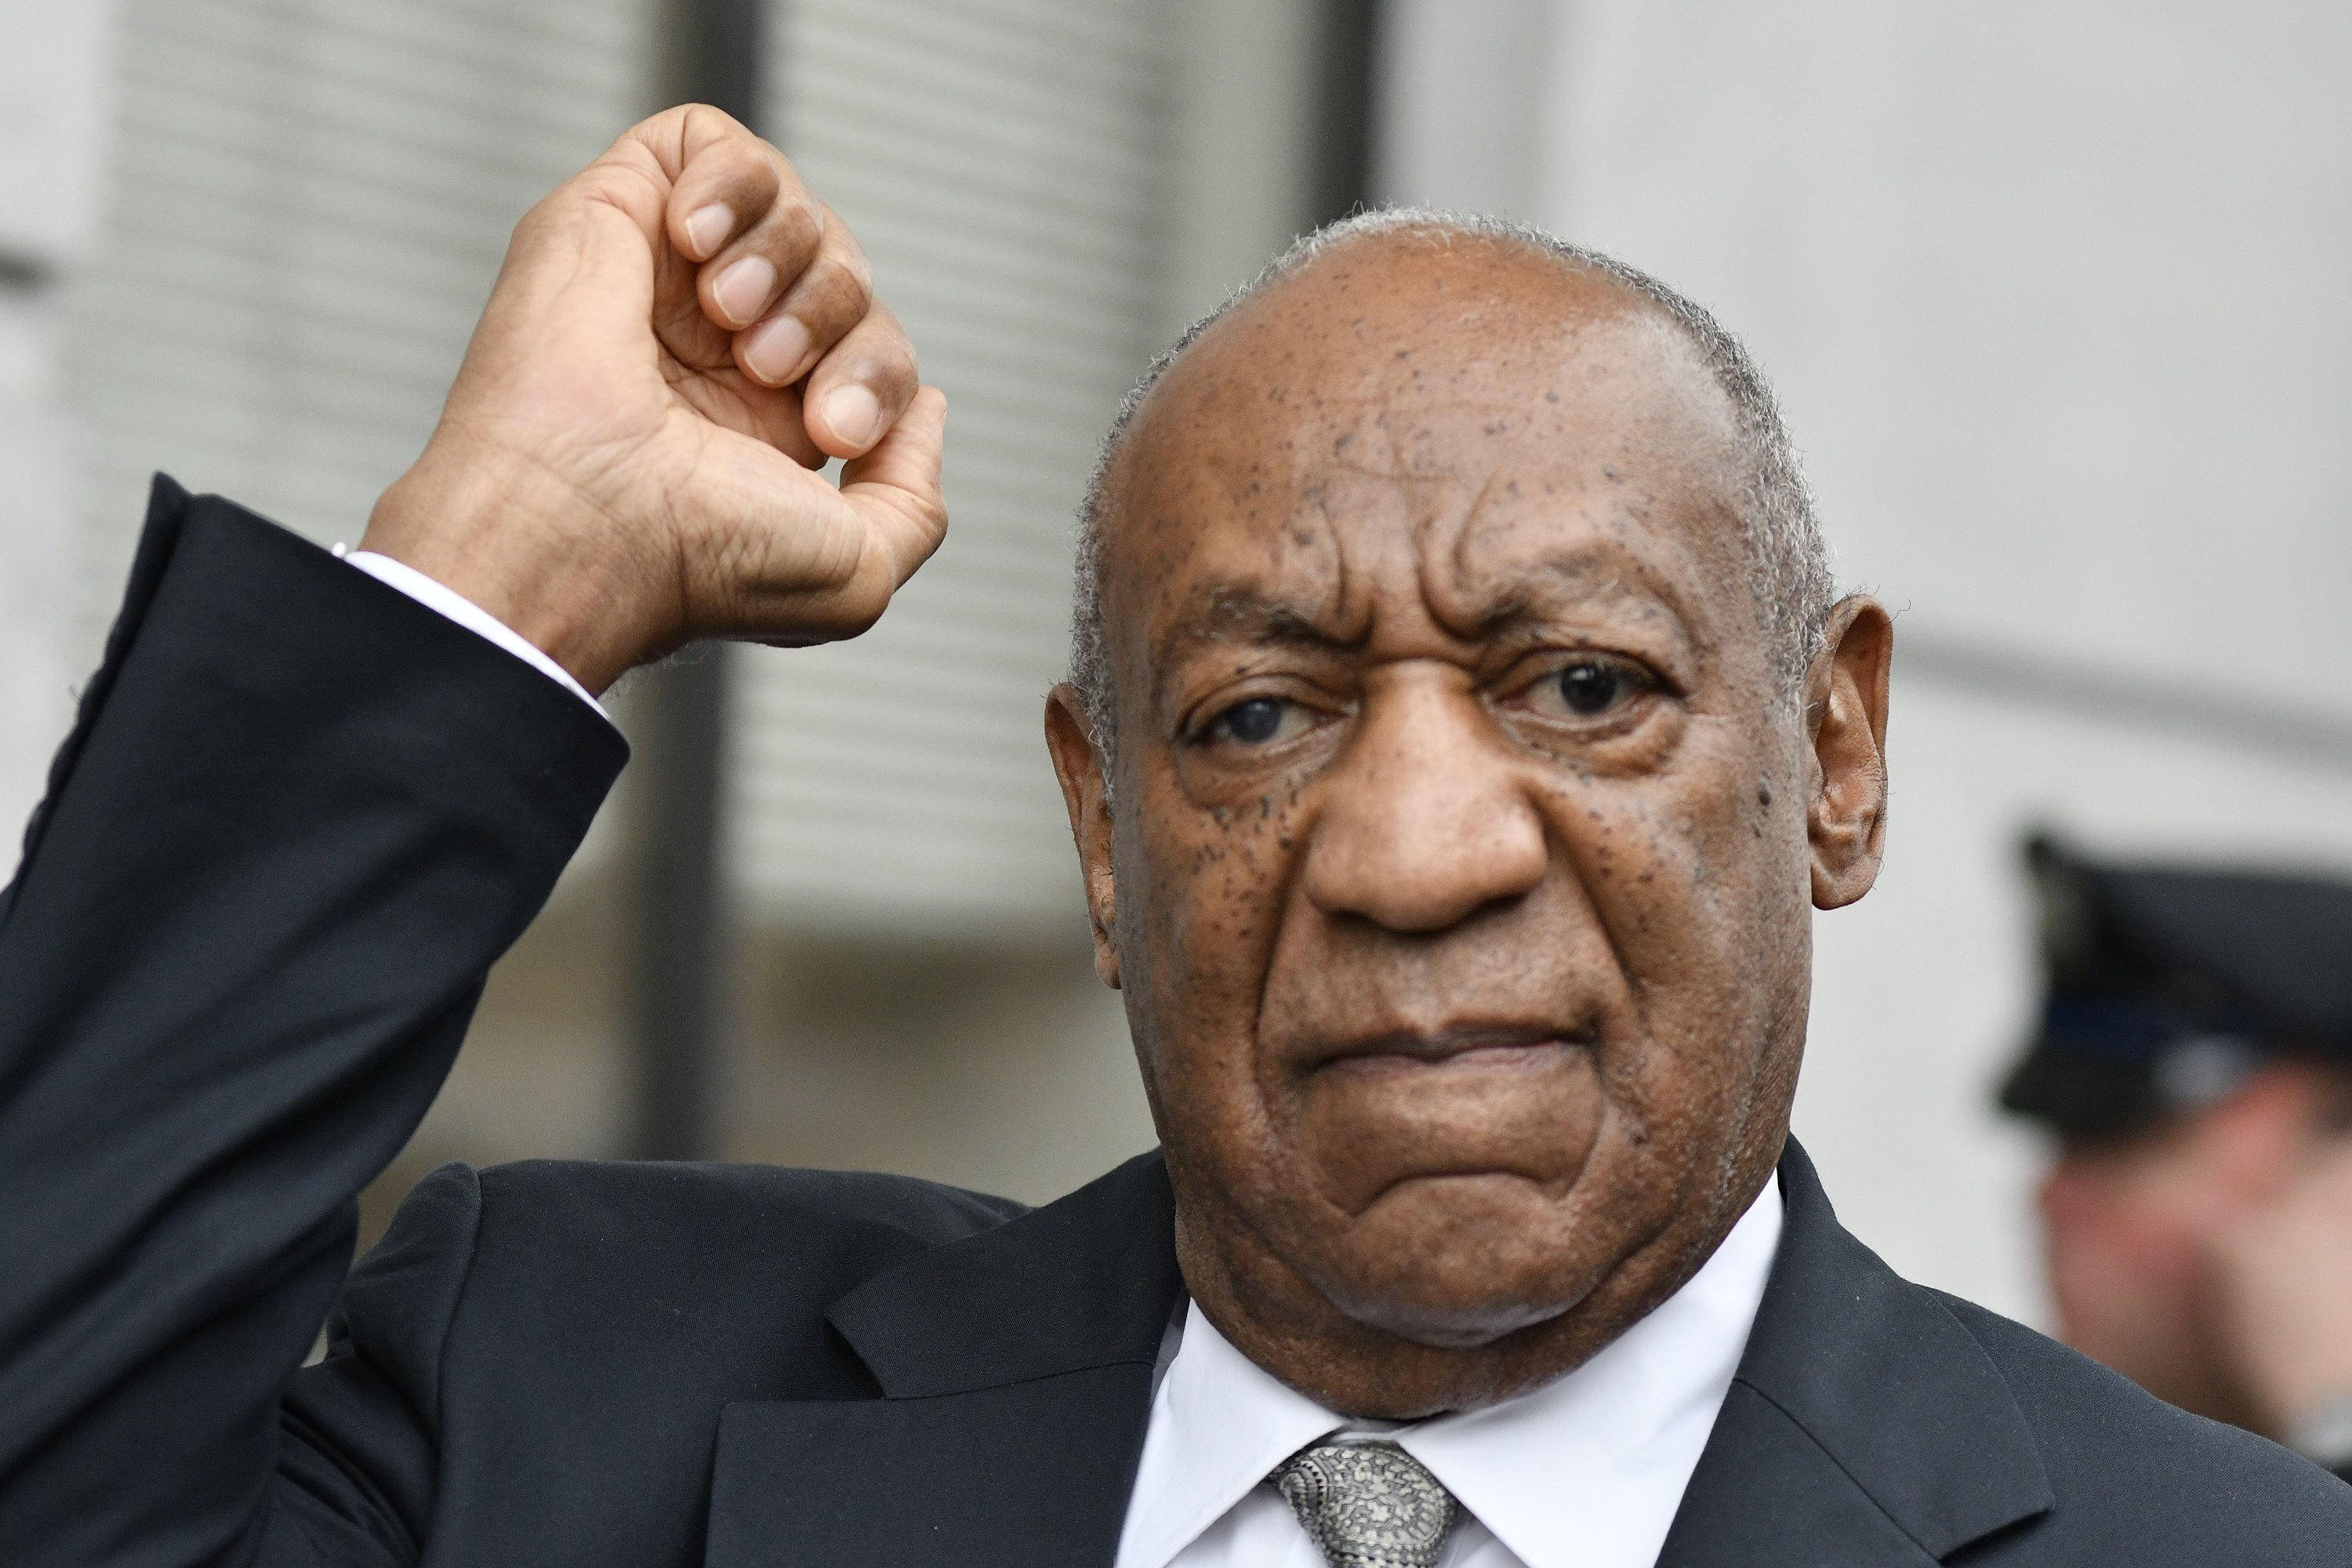 Bill Cosby reacts after Judge Steven O'Neill declares a mistrial in the aggravated indecent assault trial of entertainer Bill Cosby, at Montgomery County Courthouse, in Norristown, Pa., on June 17, 2017